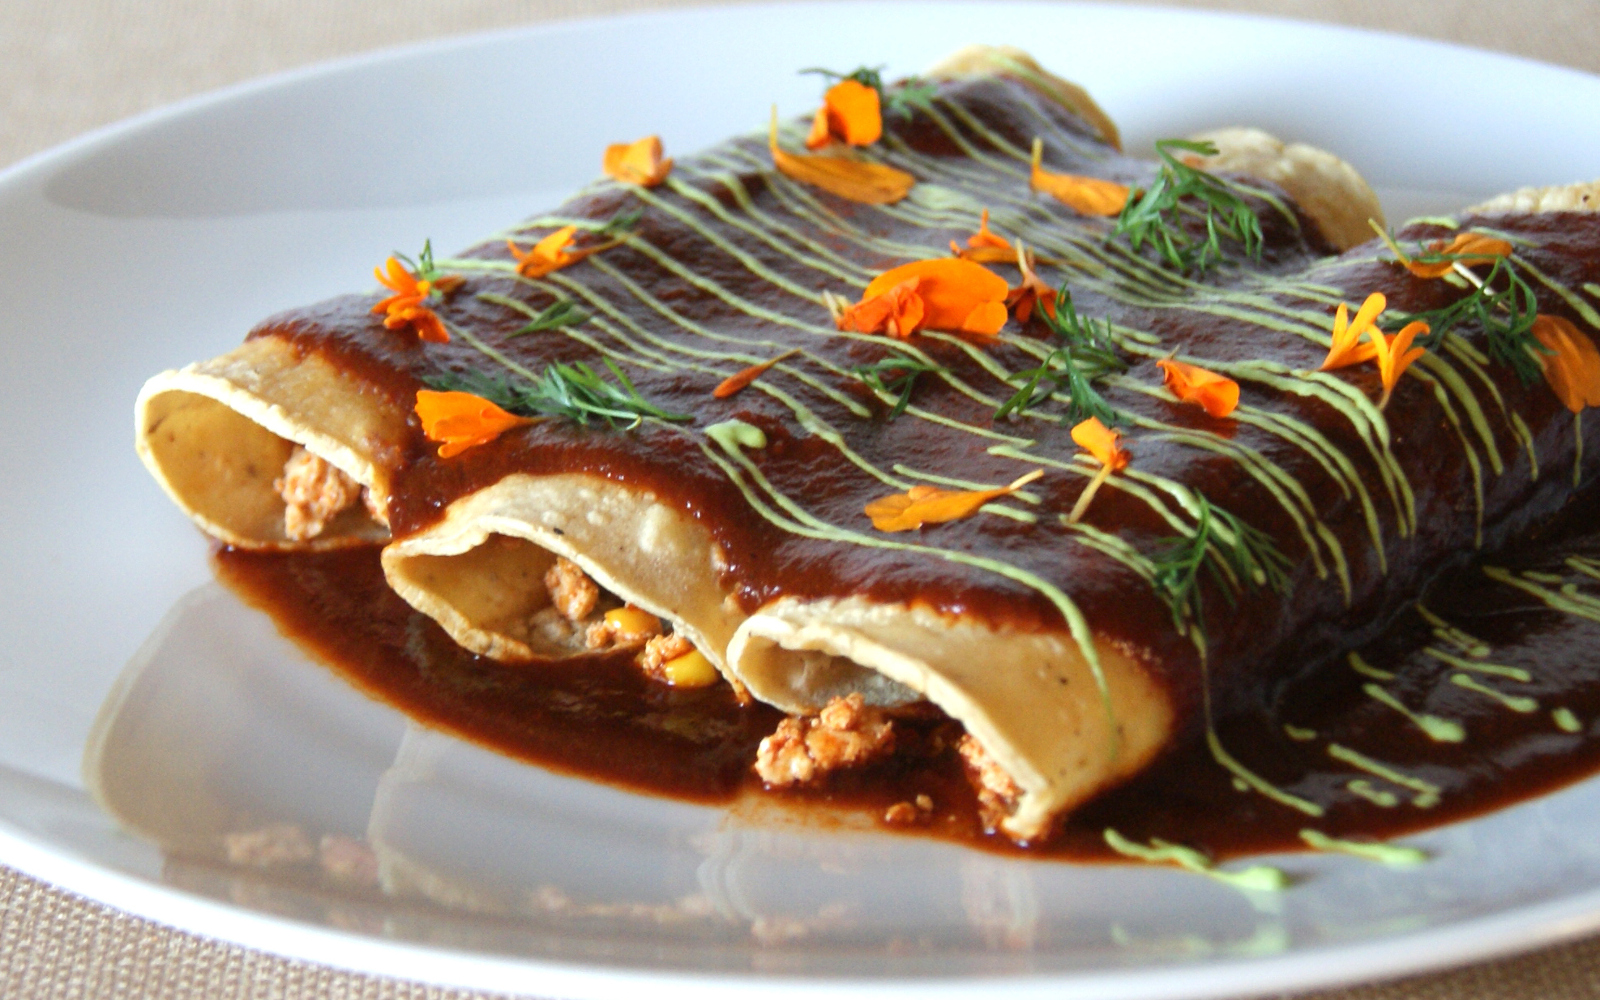 Tofu and Vegetable Enchiladas With Spicy Chili Sauce and Avocado Crema